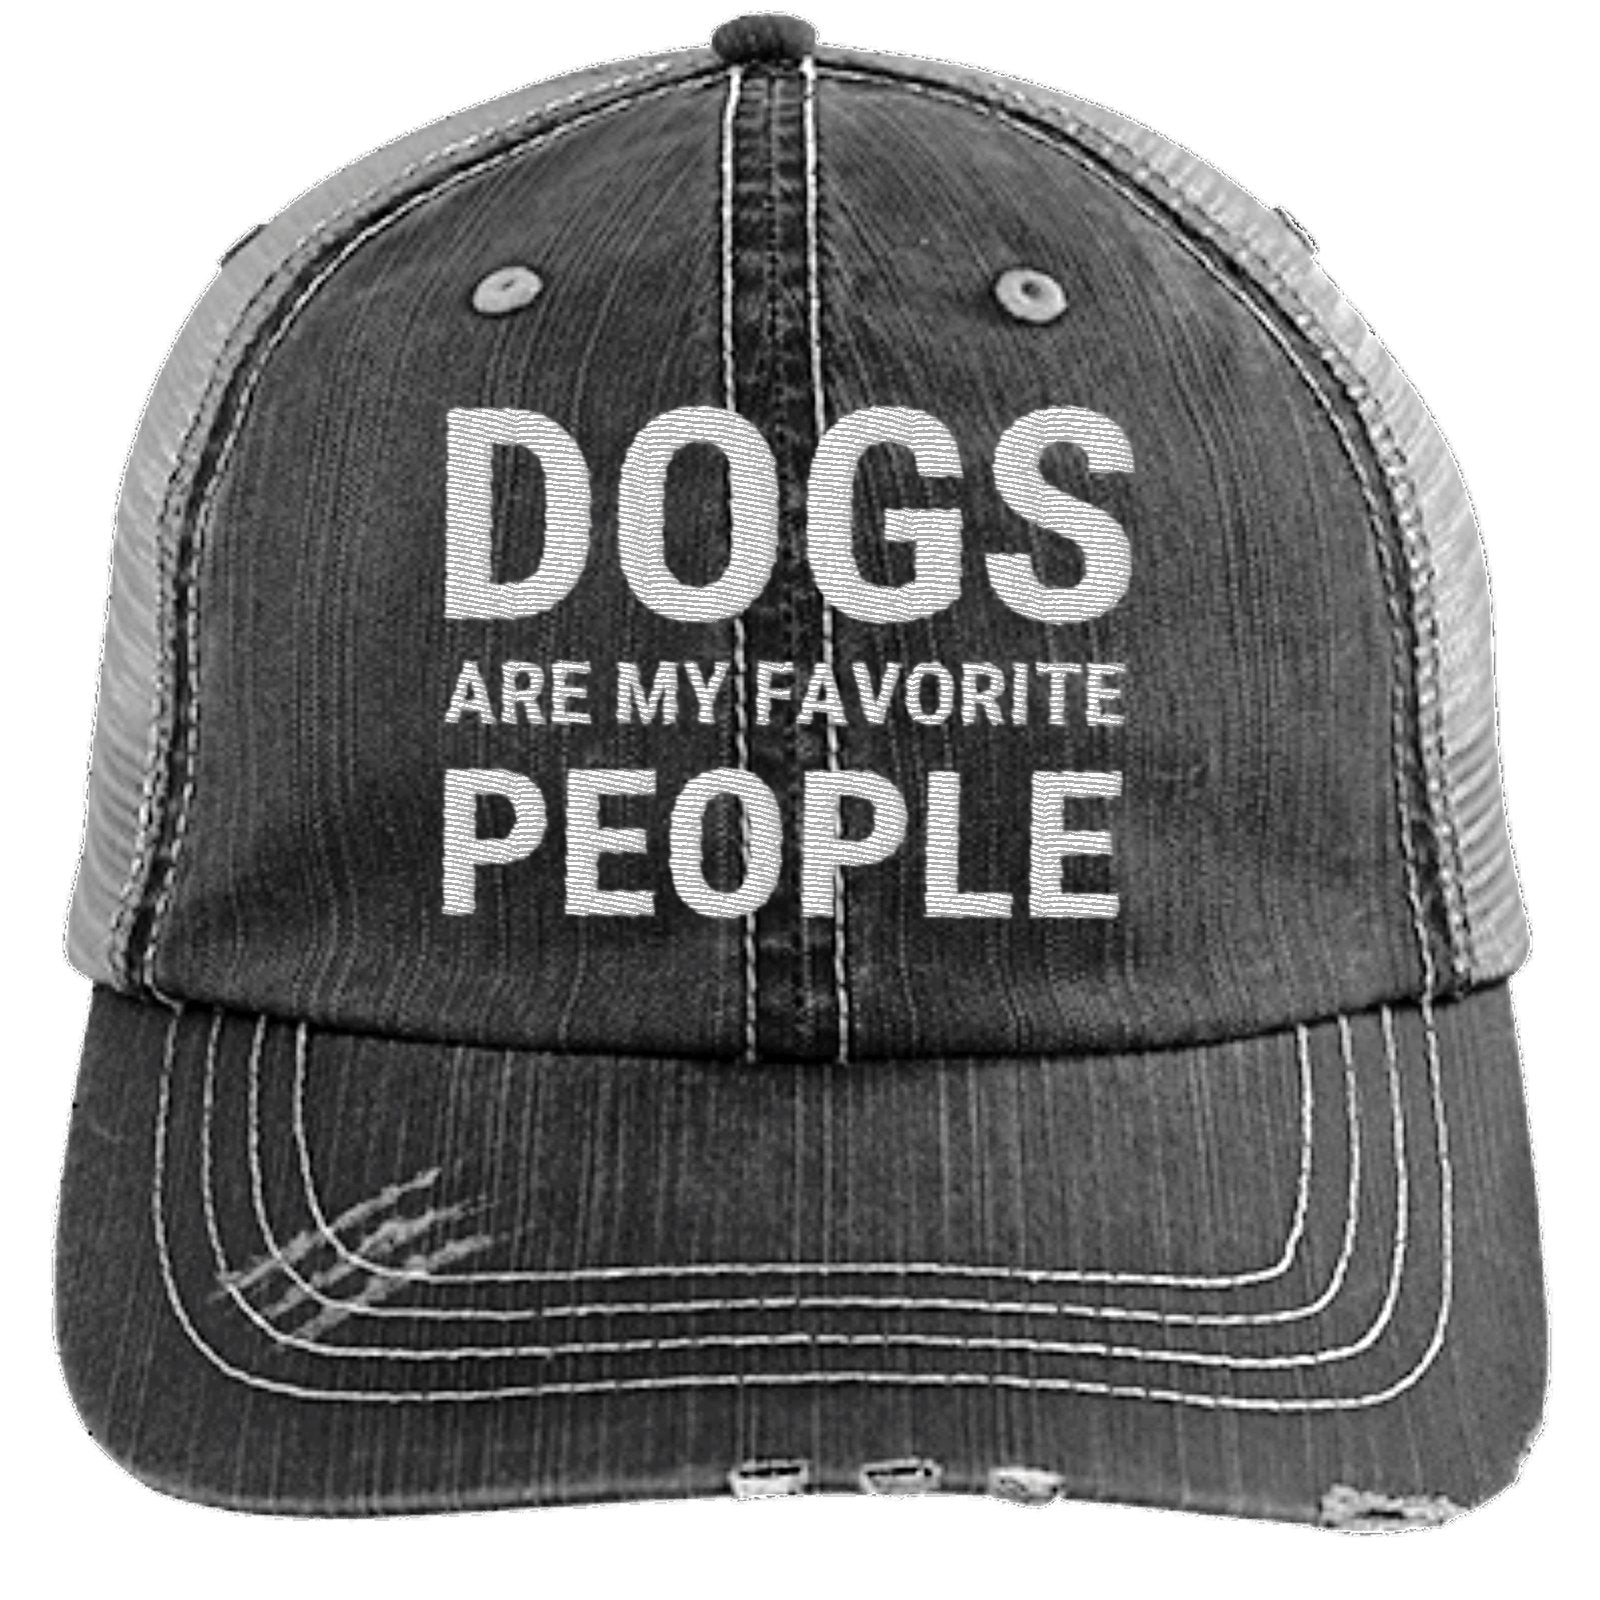 b715ac9d665ef Dogs Are My Favorite People Hat Distressed Trucker Cap